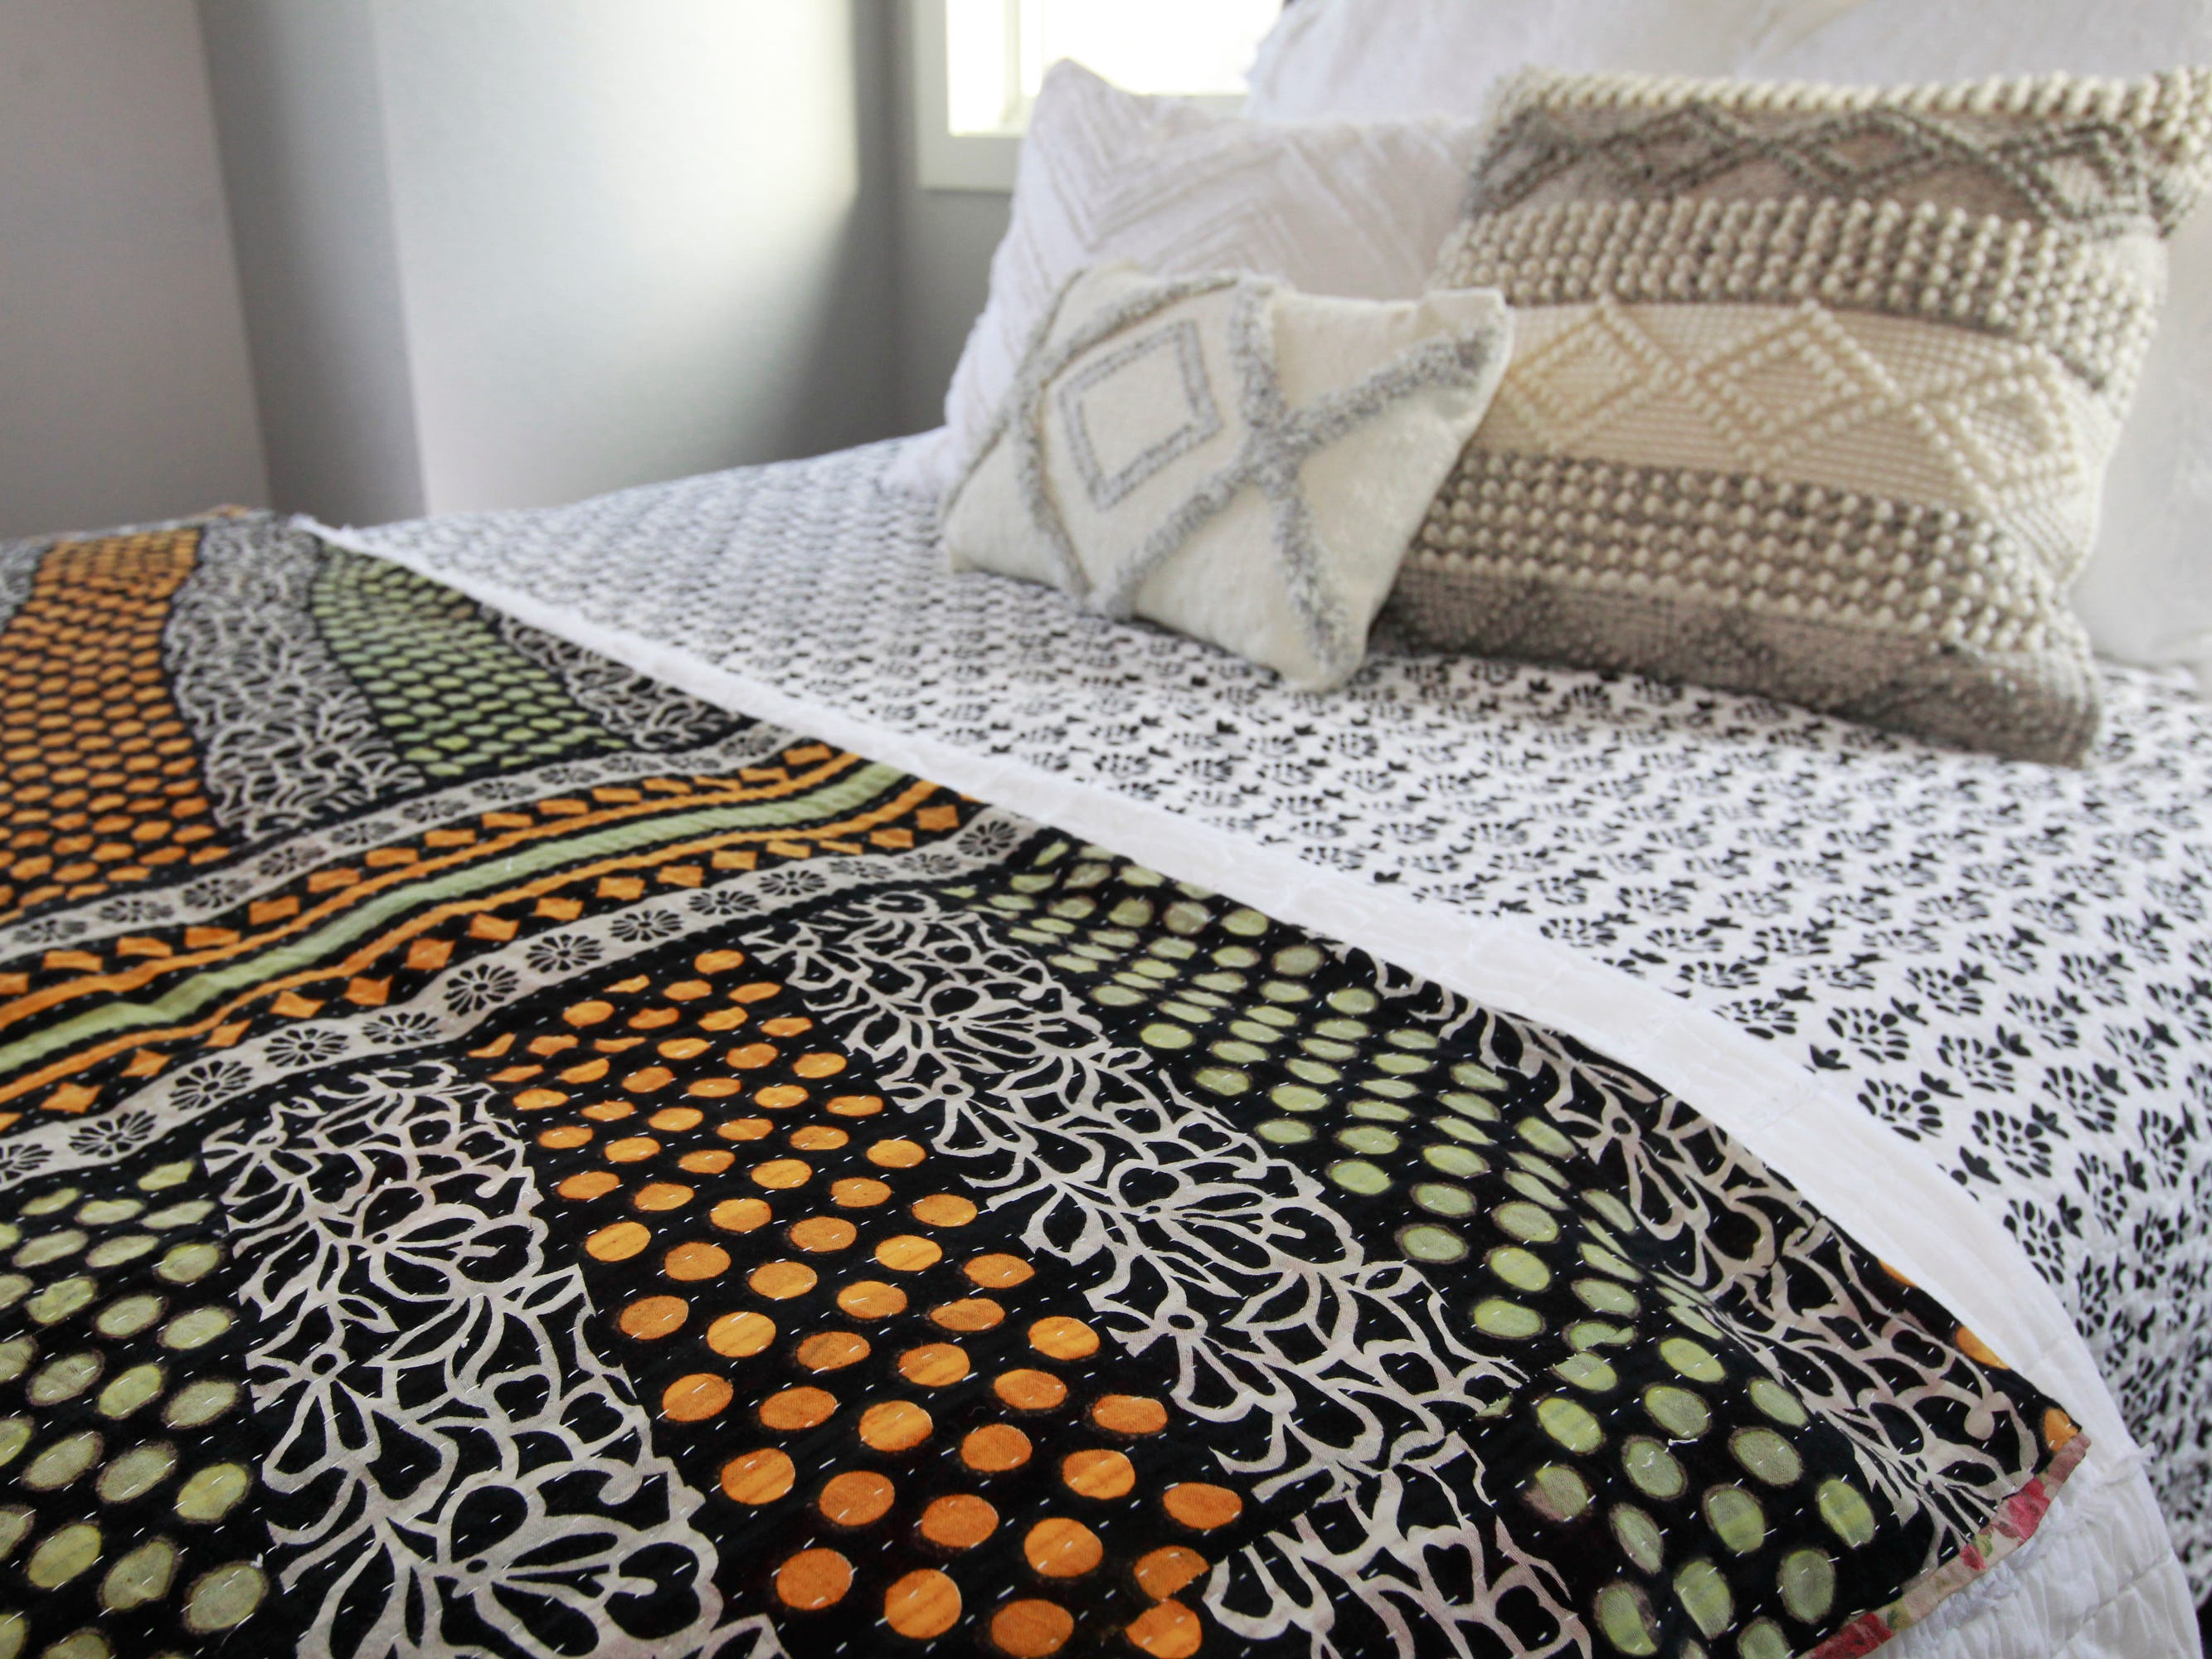 Laura Goranson selected comfy and cozy textured bedding for the canopy bed in a guest bedroom.